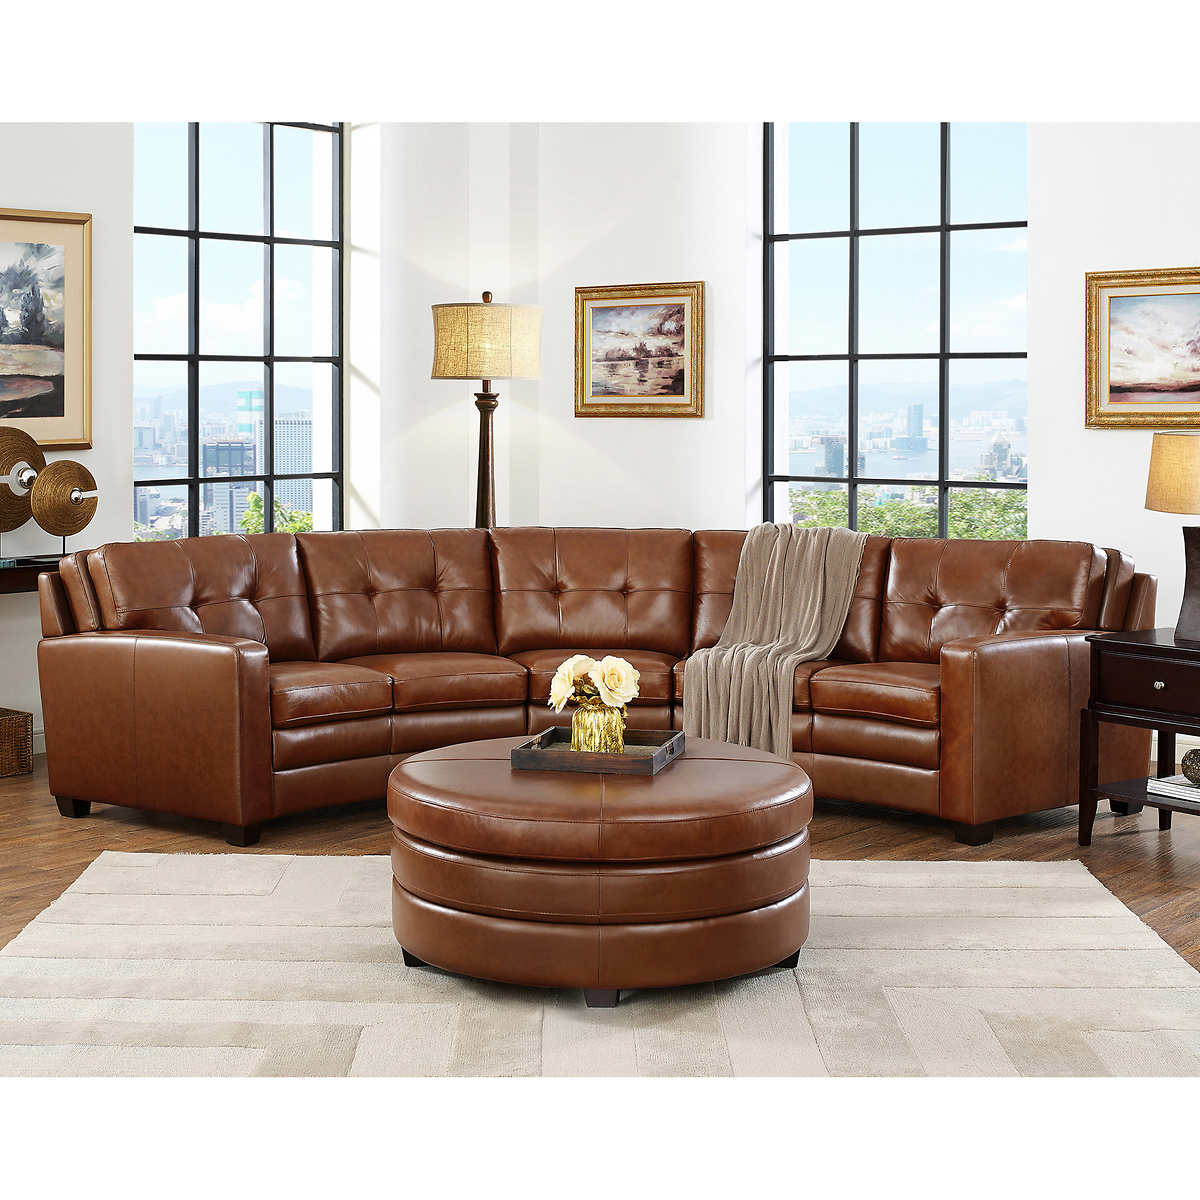 Living Room Couch Set Sectionals Chaises Costco